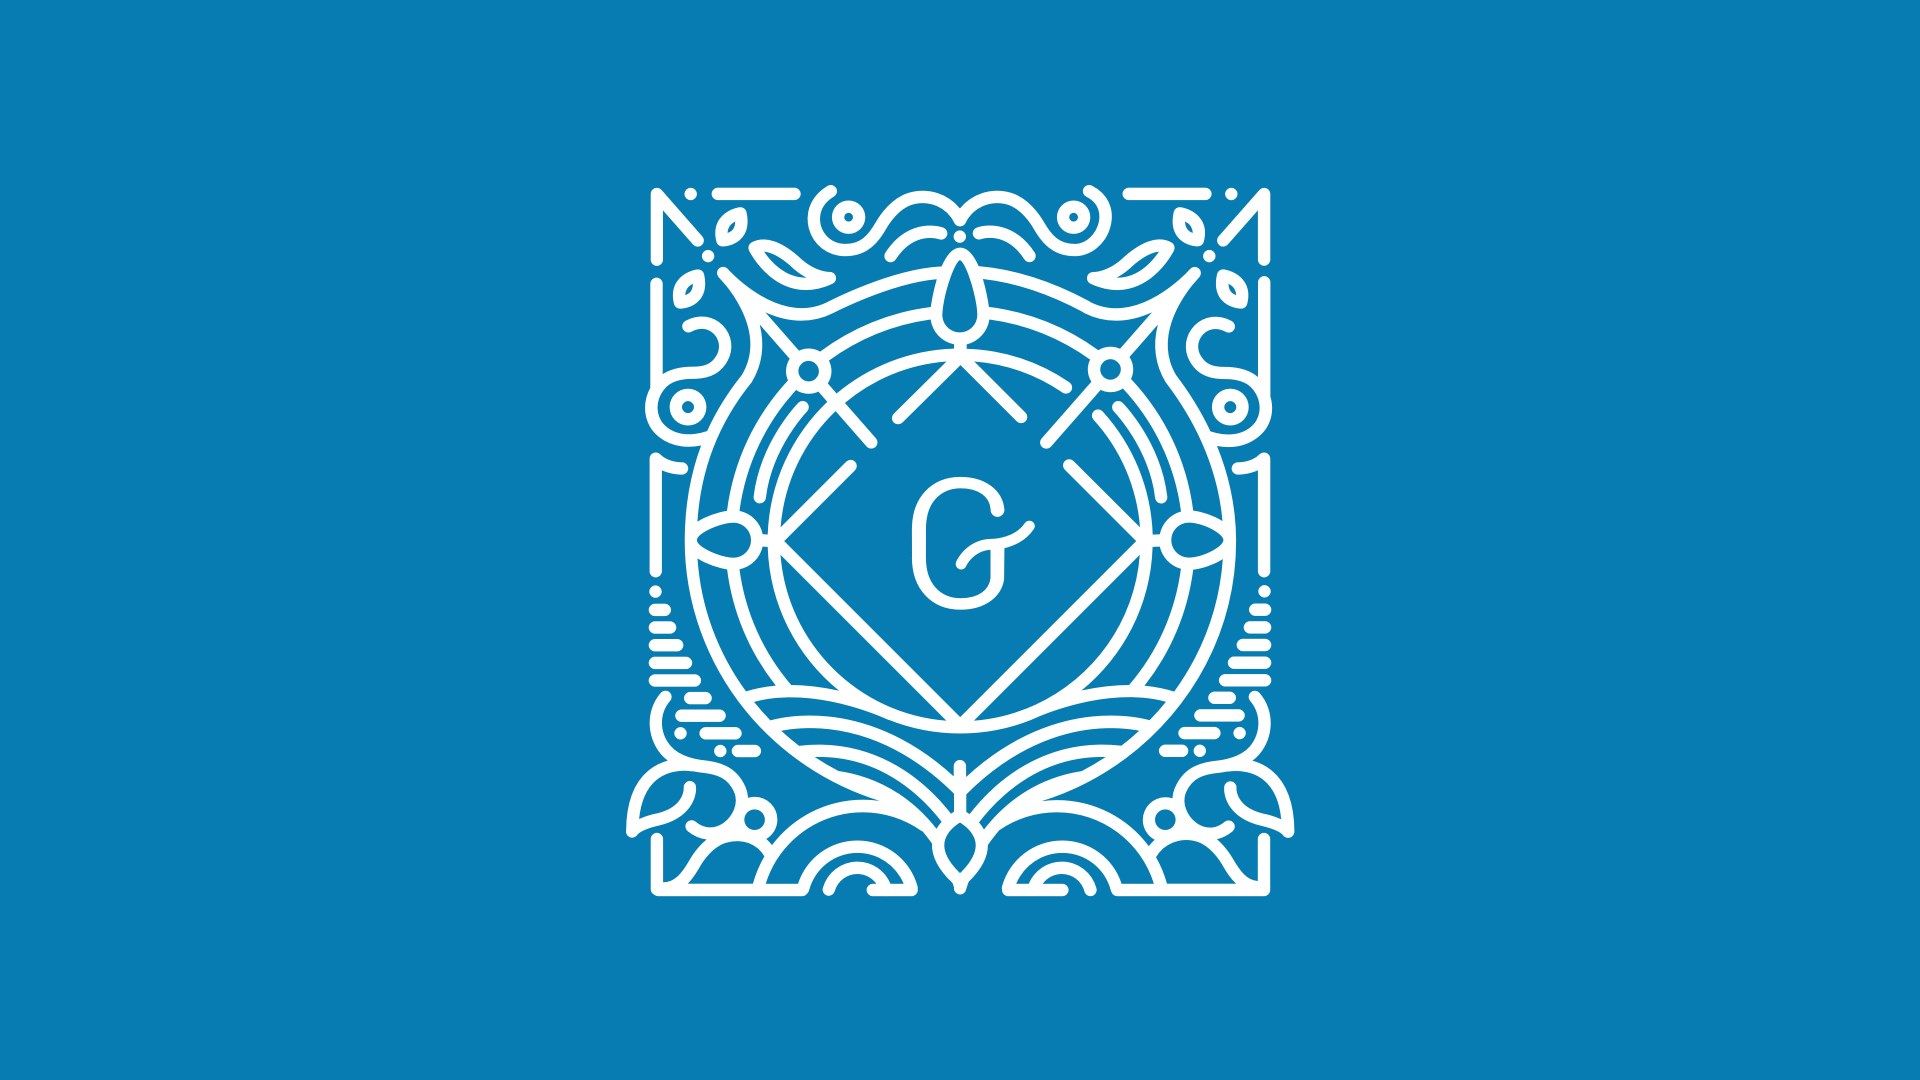 Gutenberg project logo